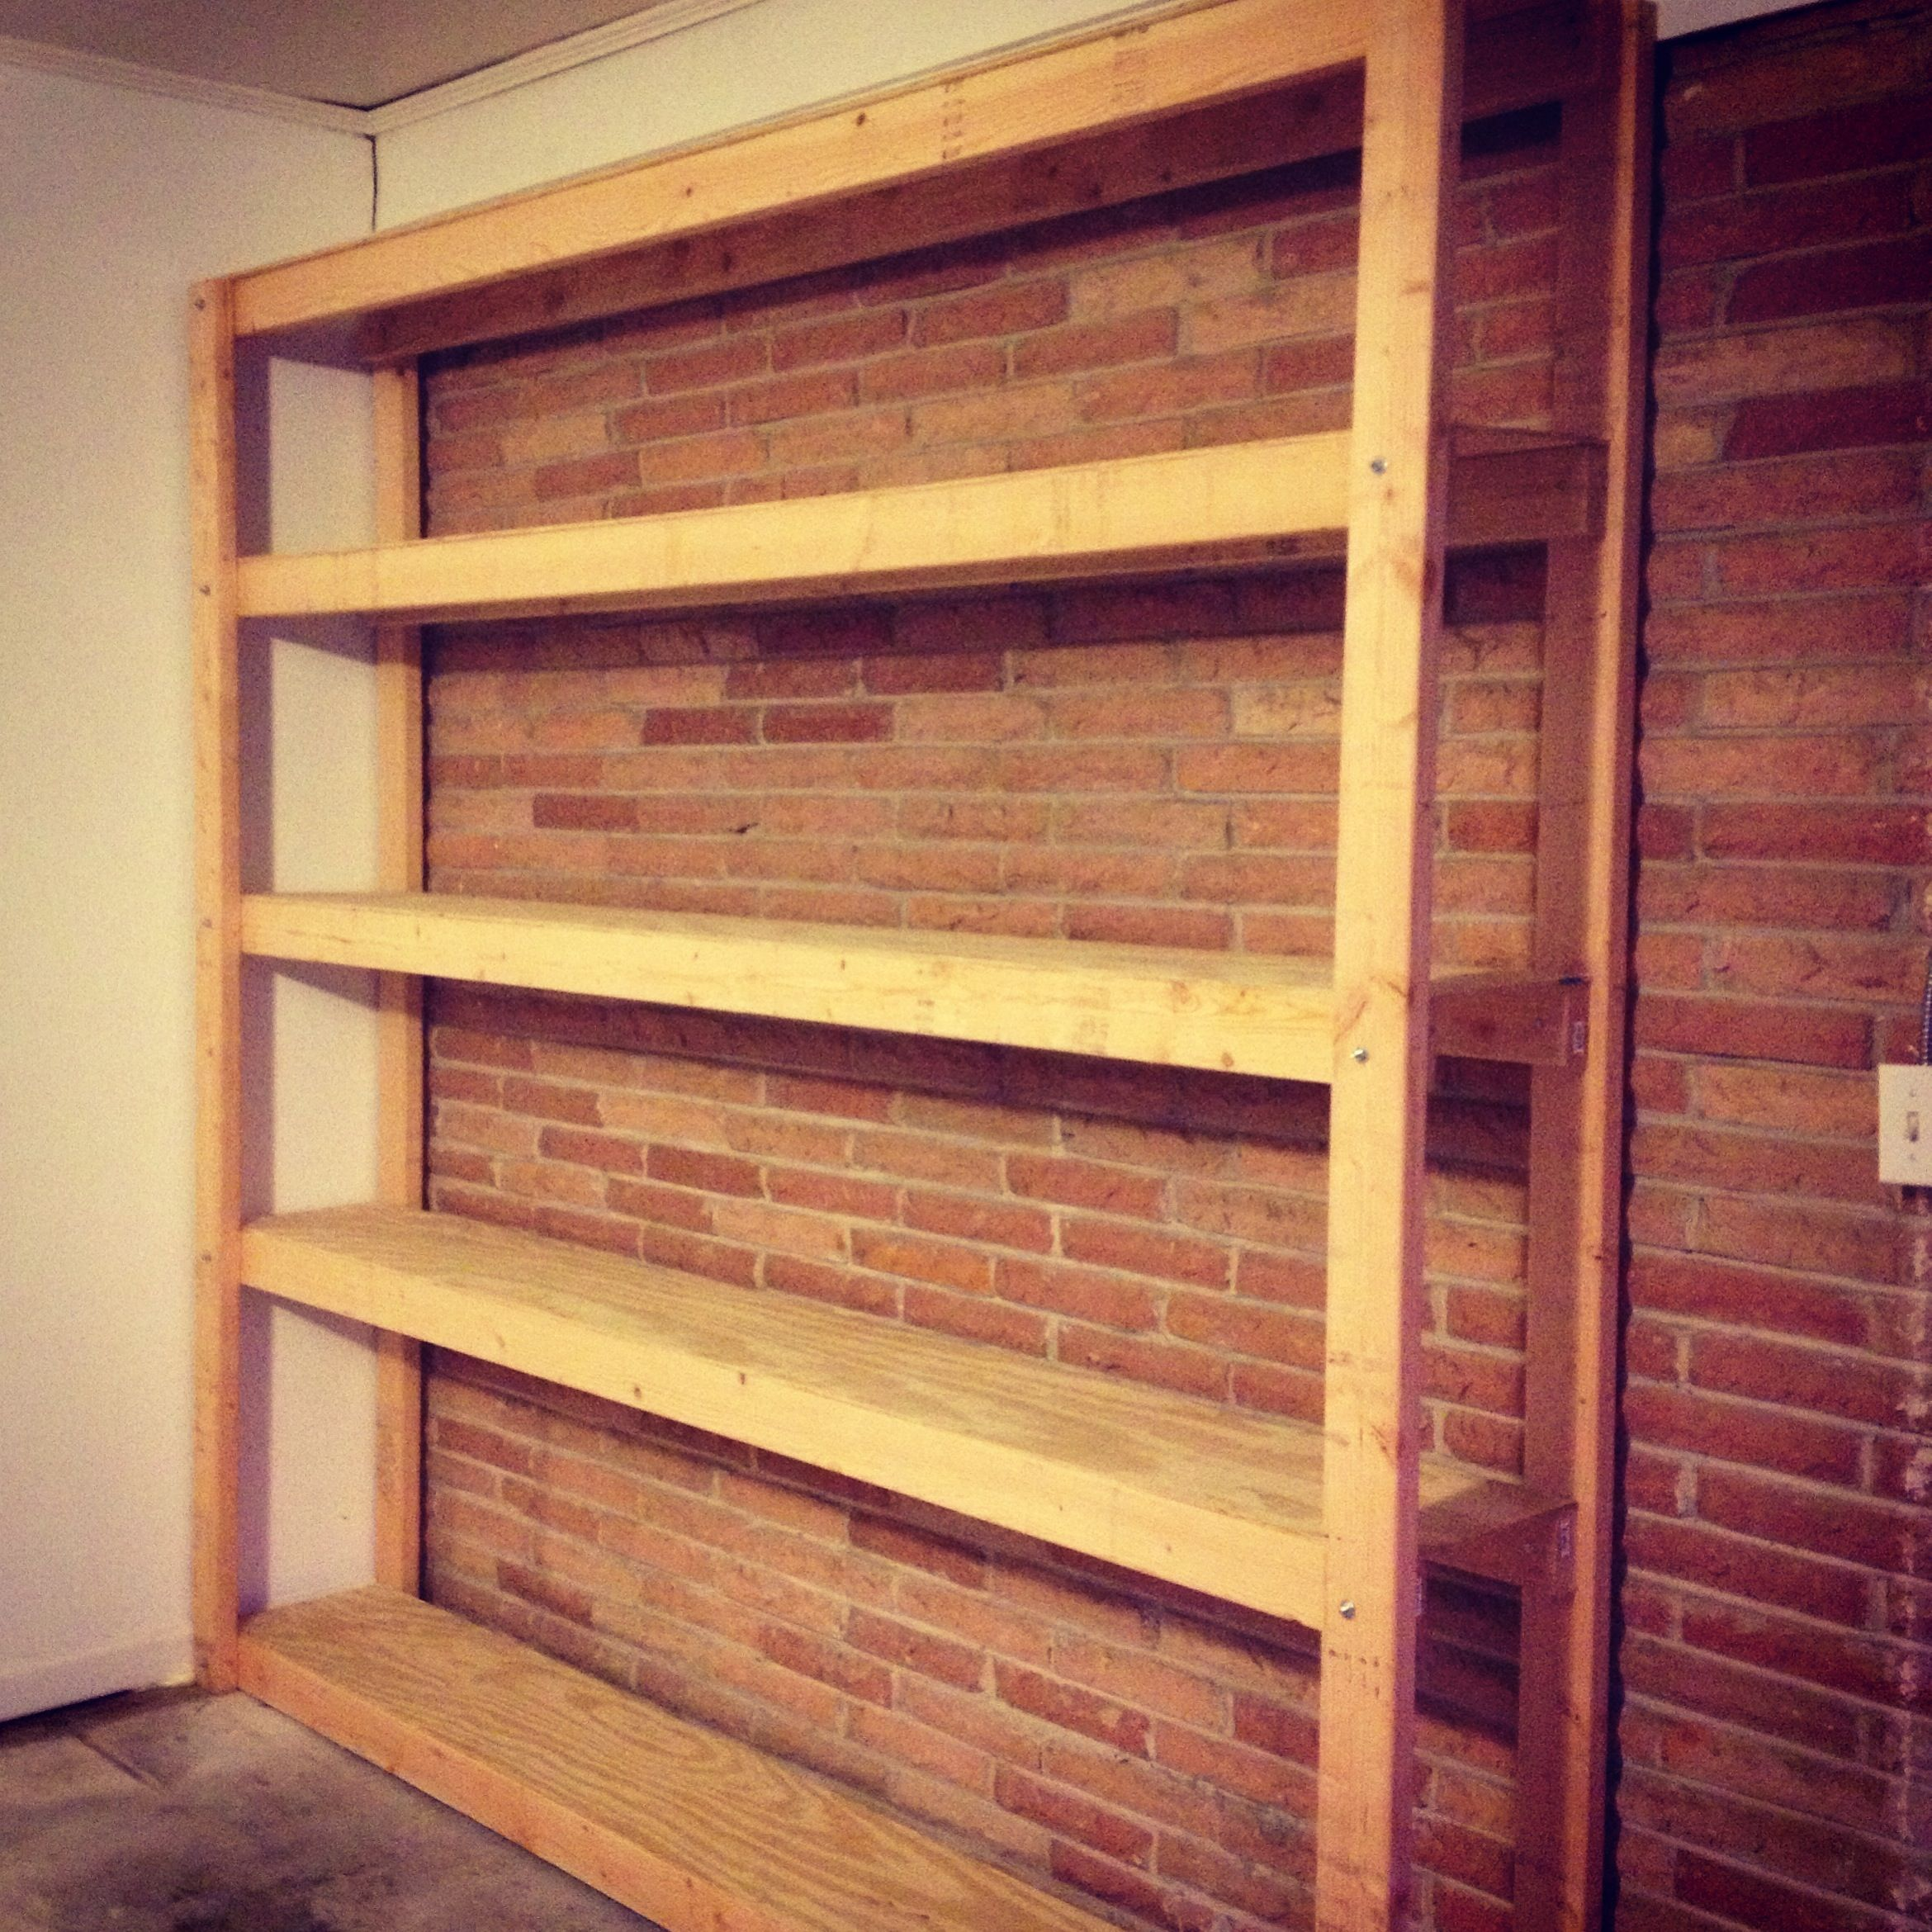 Garage Shelving Units How To Build Shelves For Your Garage Garage Garage Shelving